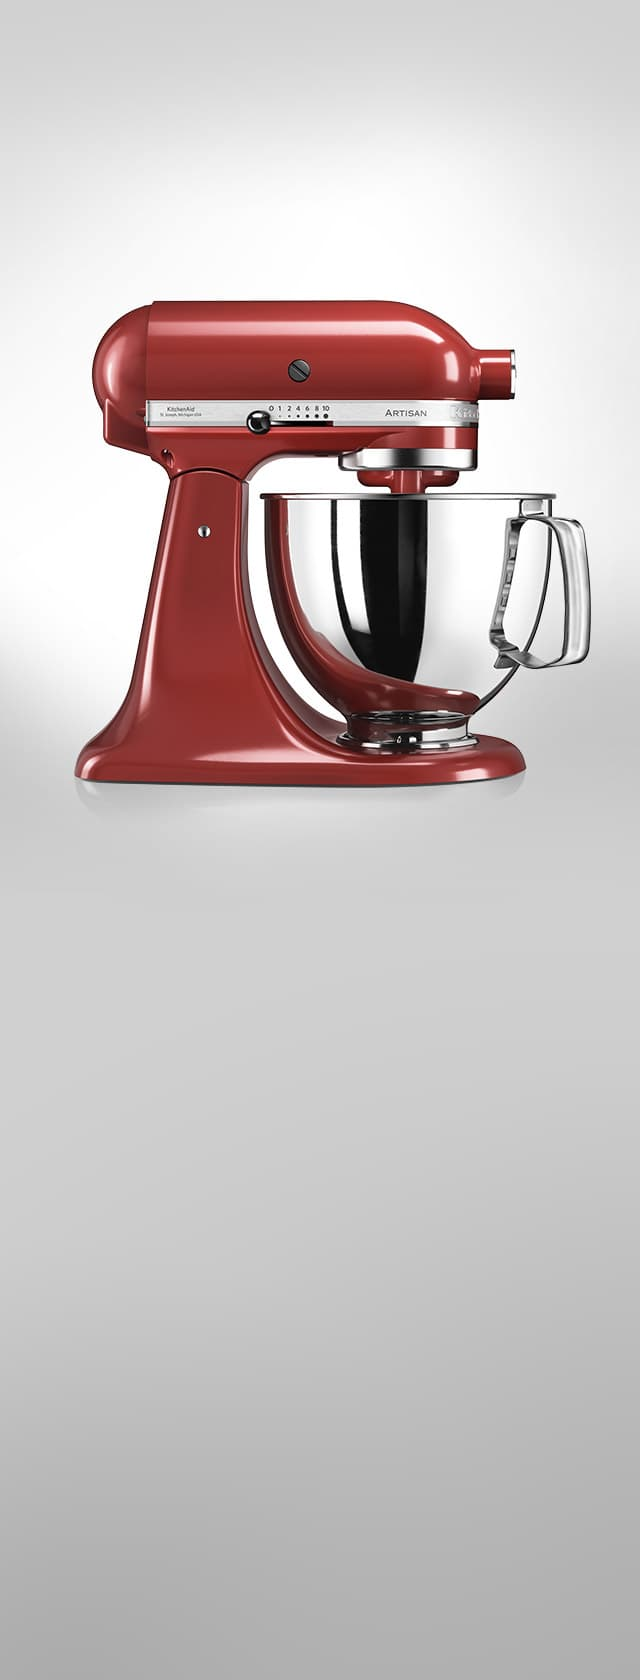 Sitio web oficial de KitchenAid | Electrodomésticos KitchenAid de ...